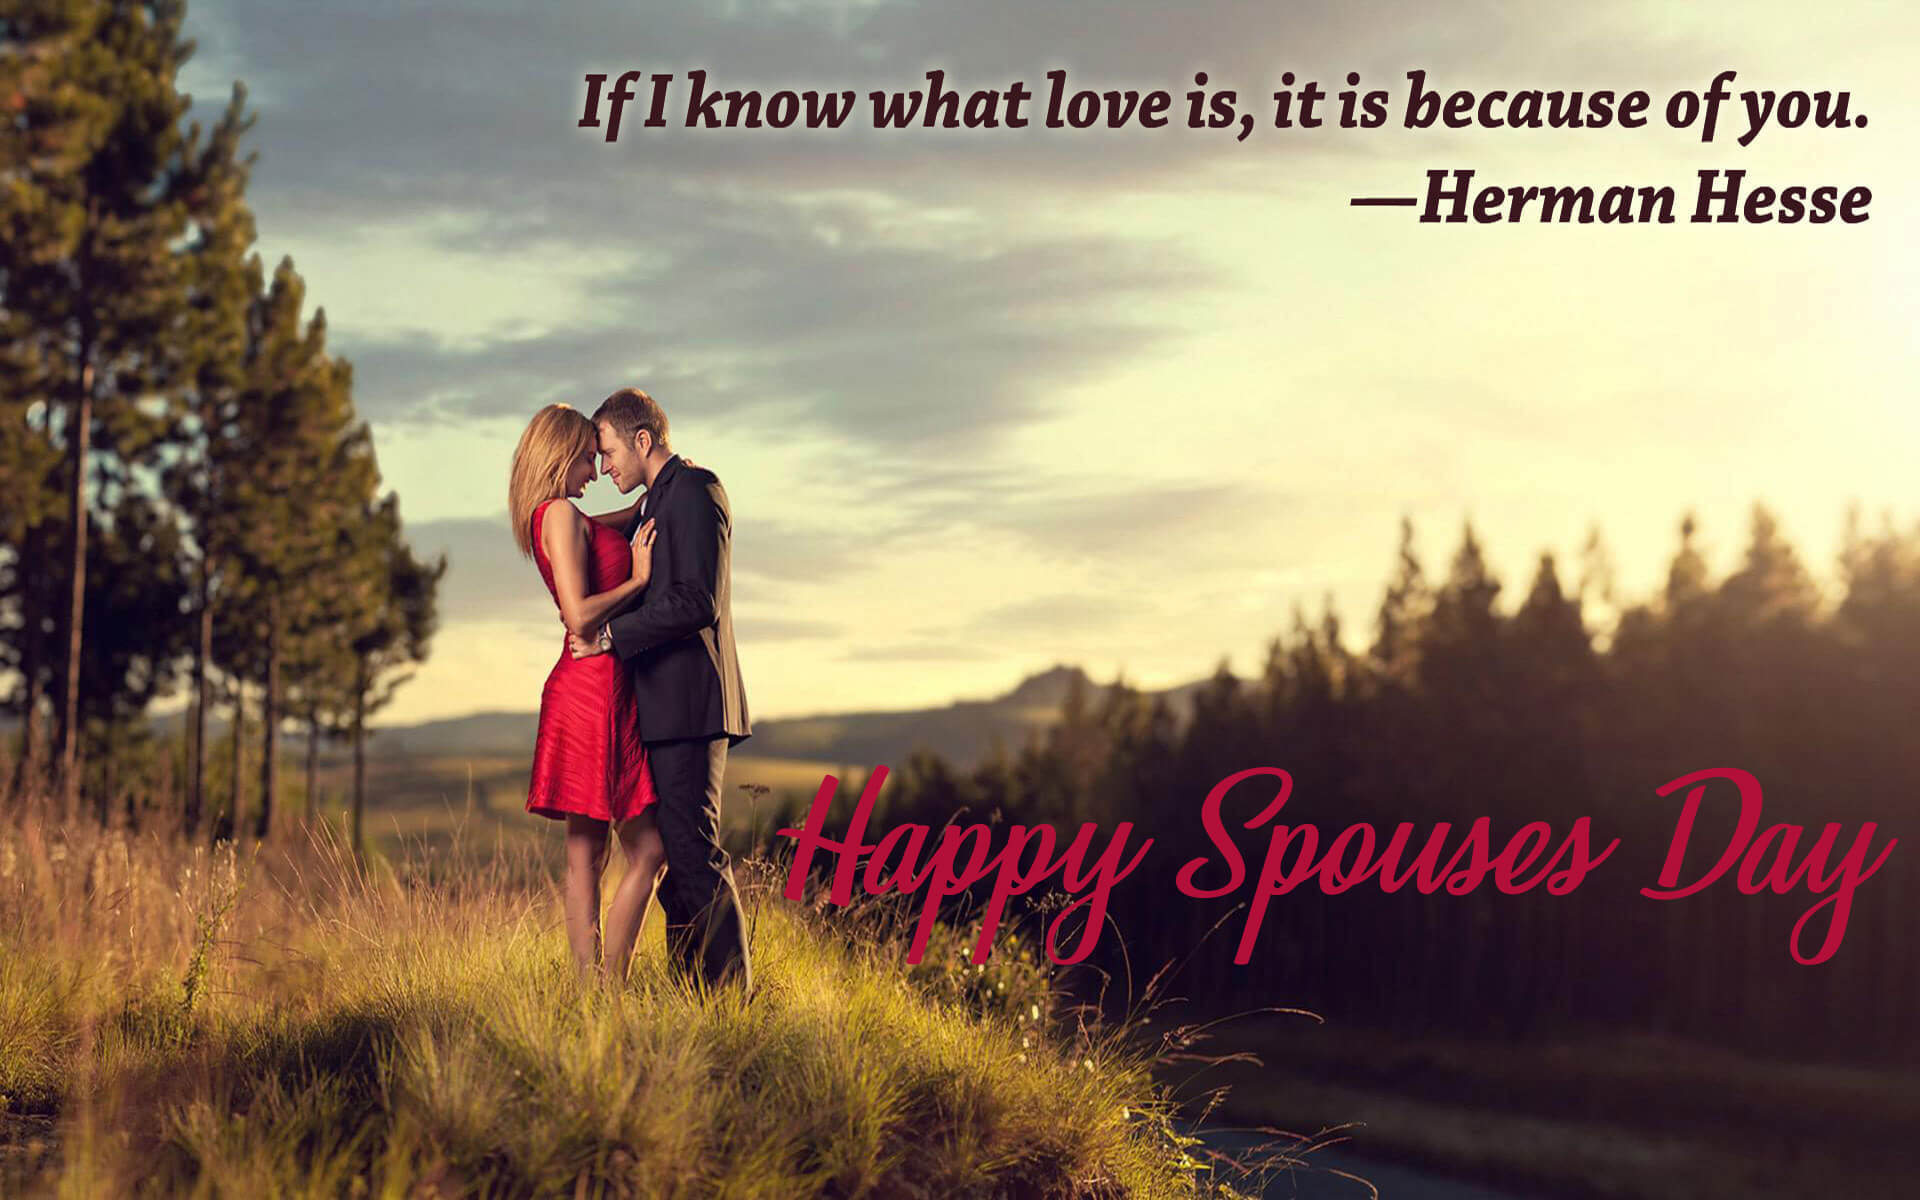 happy spouses day greetings wishes romantic image quotes hd wallpaper